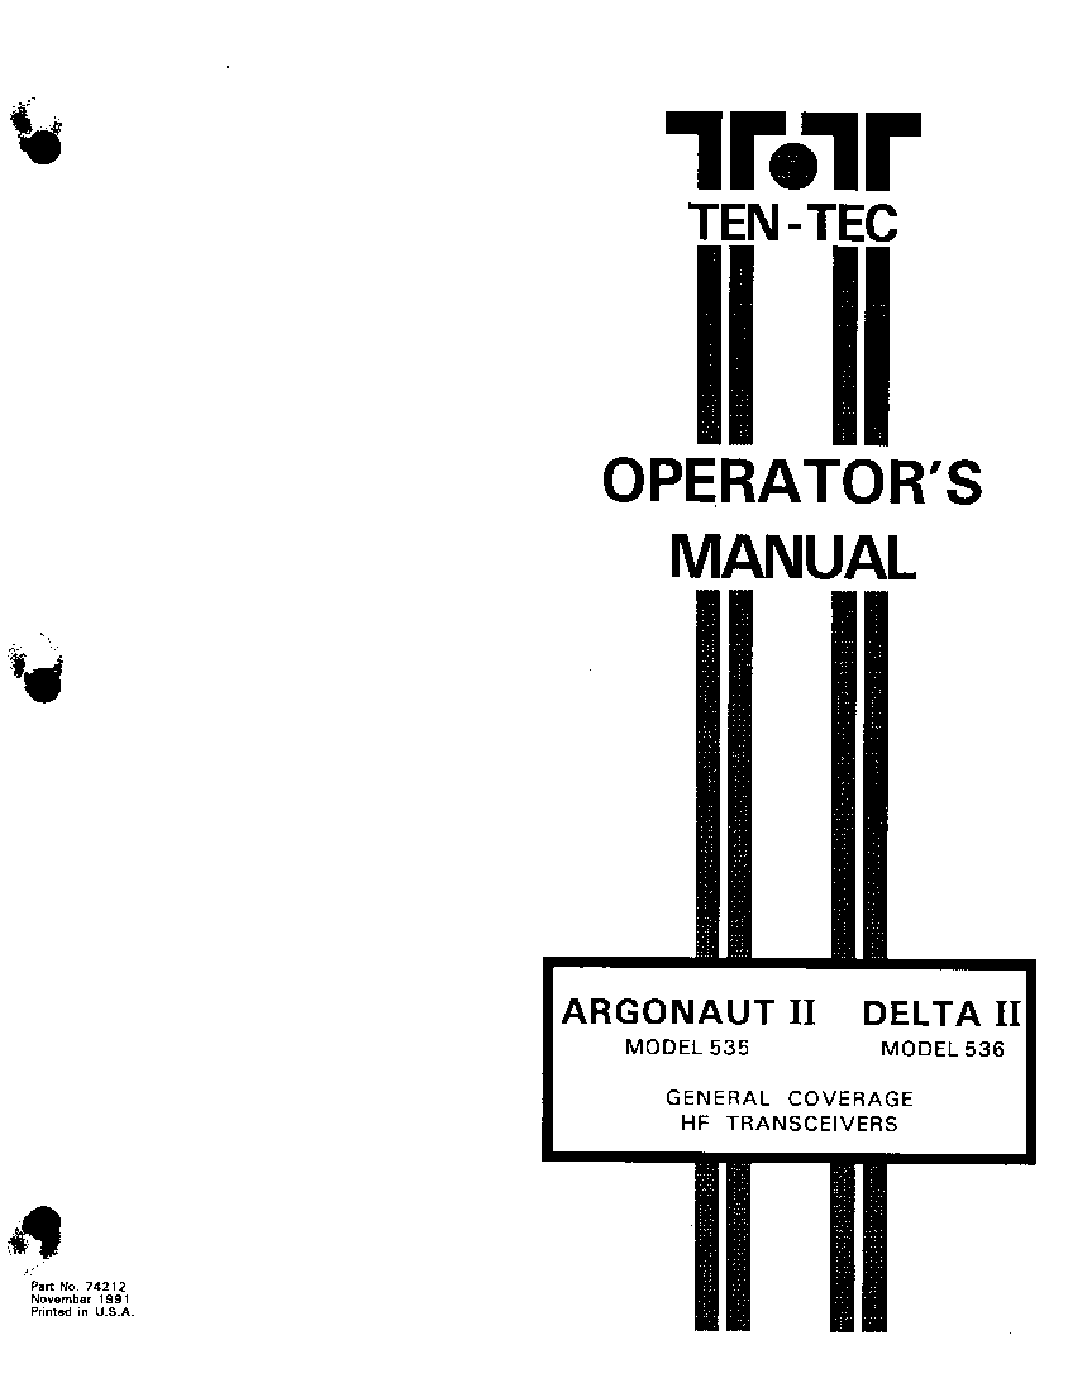 Ten Tec 417 Titan 3 Hf Linear Amplifier Sm Service Manual